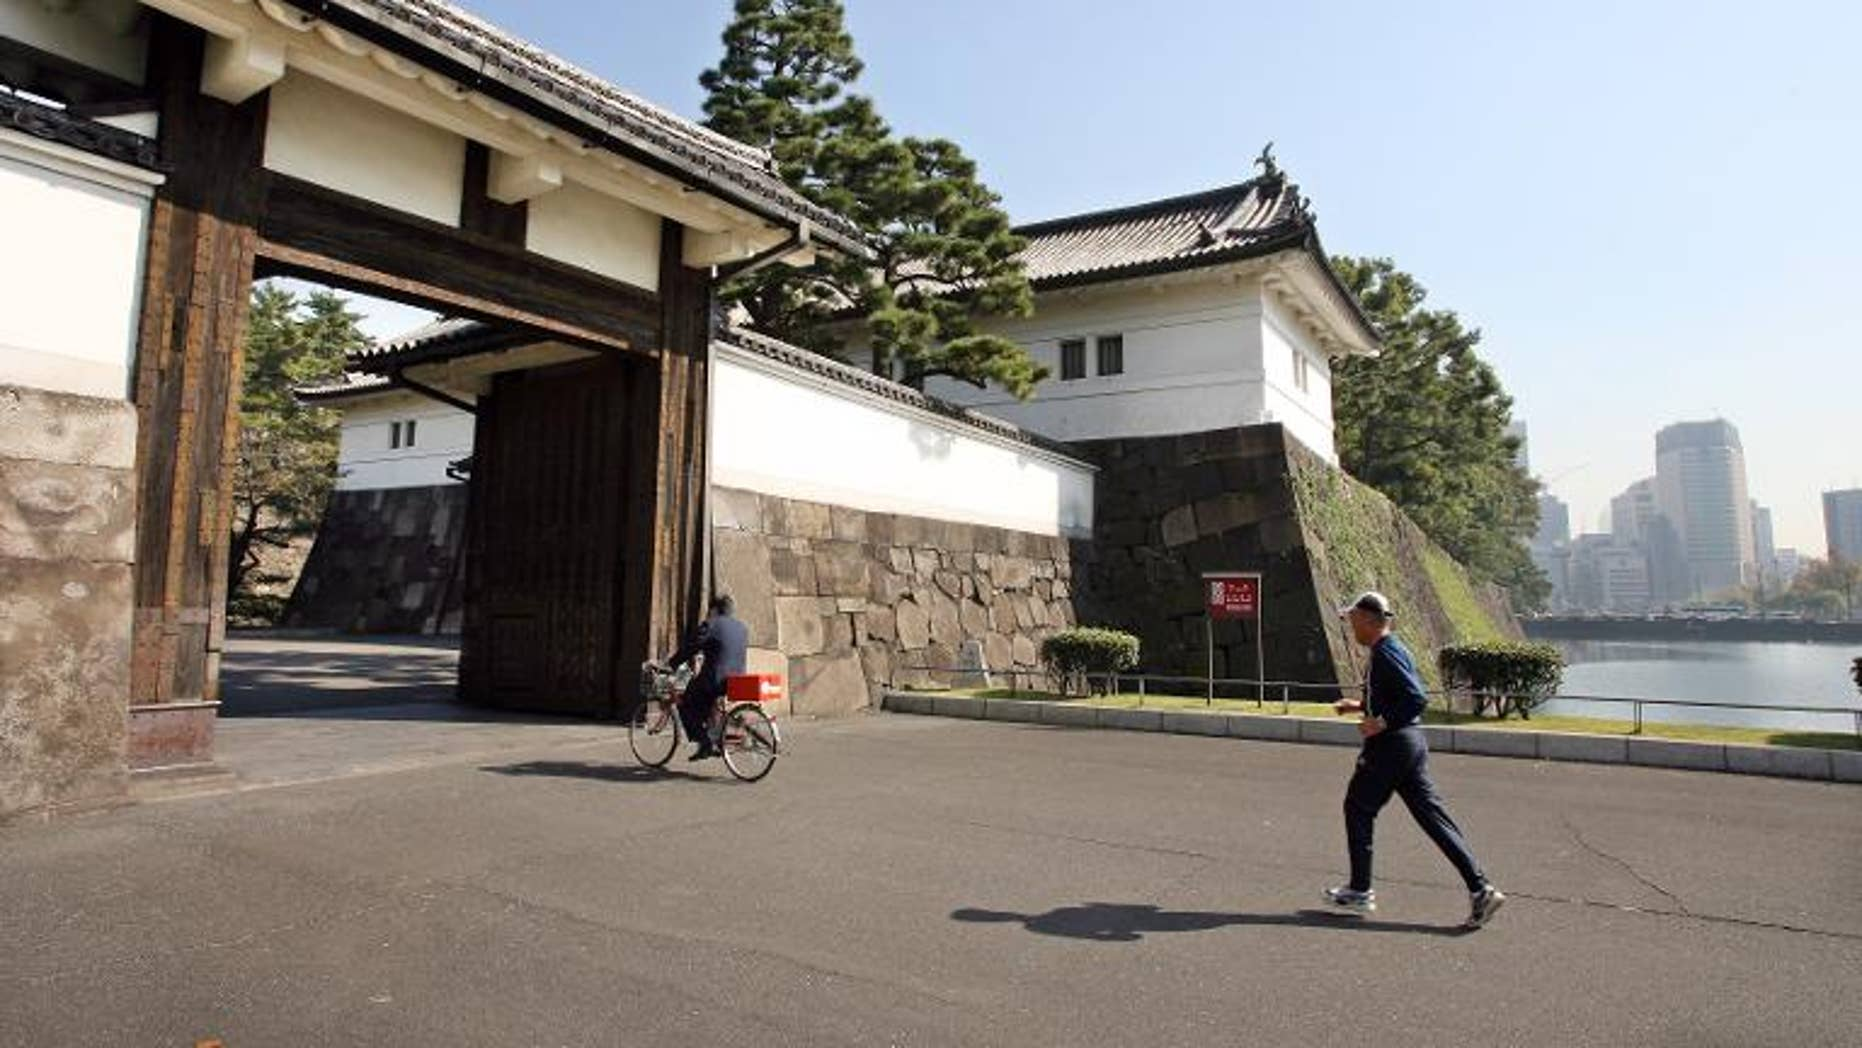 Japanese joggers are being warned to mind their manners when they run around the Imperial Palace in central Tokyo, after a spate of rudeness